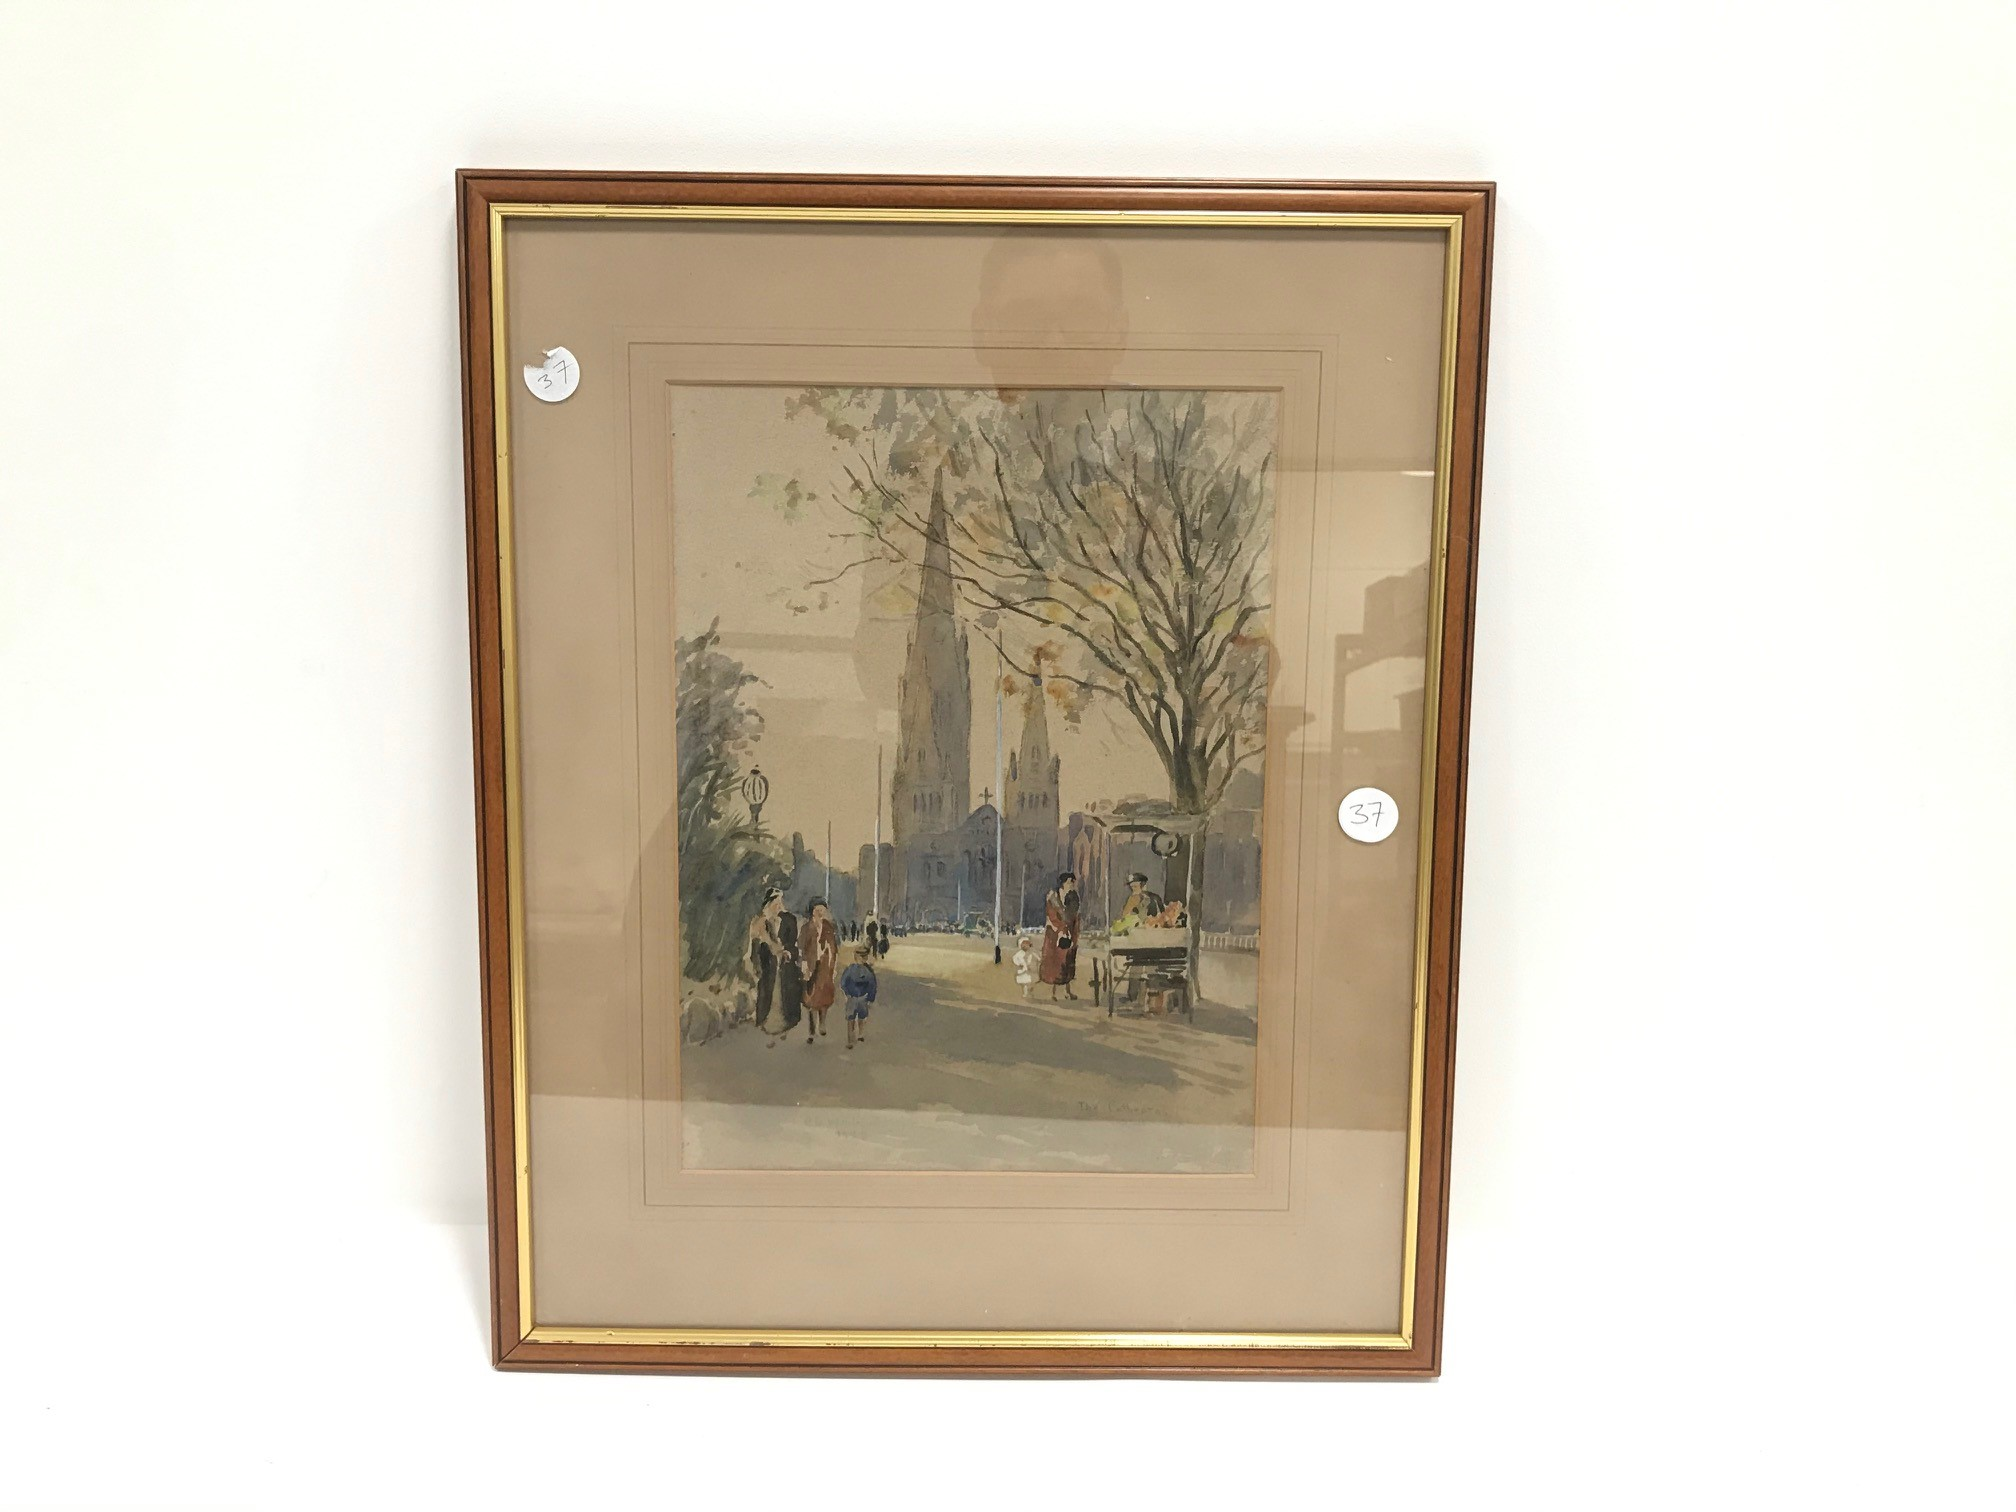 """E.W. Witty 1930s watercolour, """"Cathedral Melbourne"""", signed and dated 1933, 37cm x 27cm, framed"""